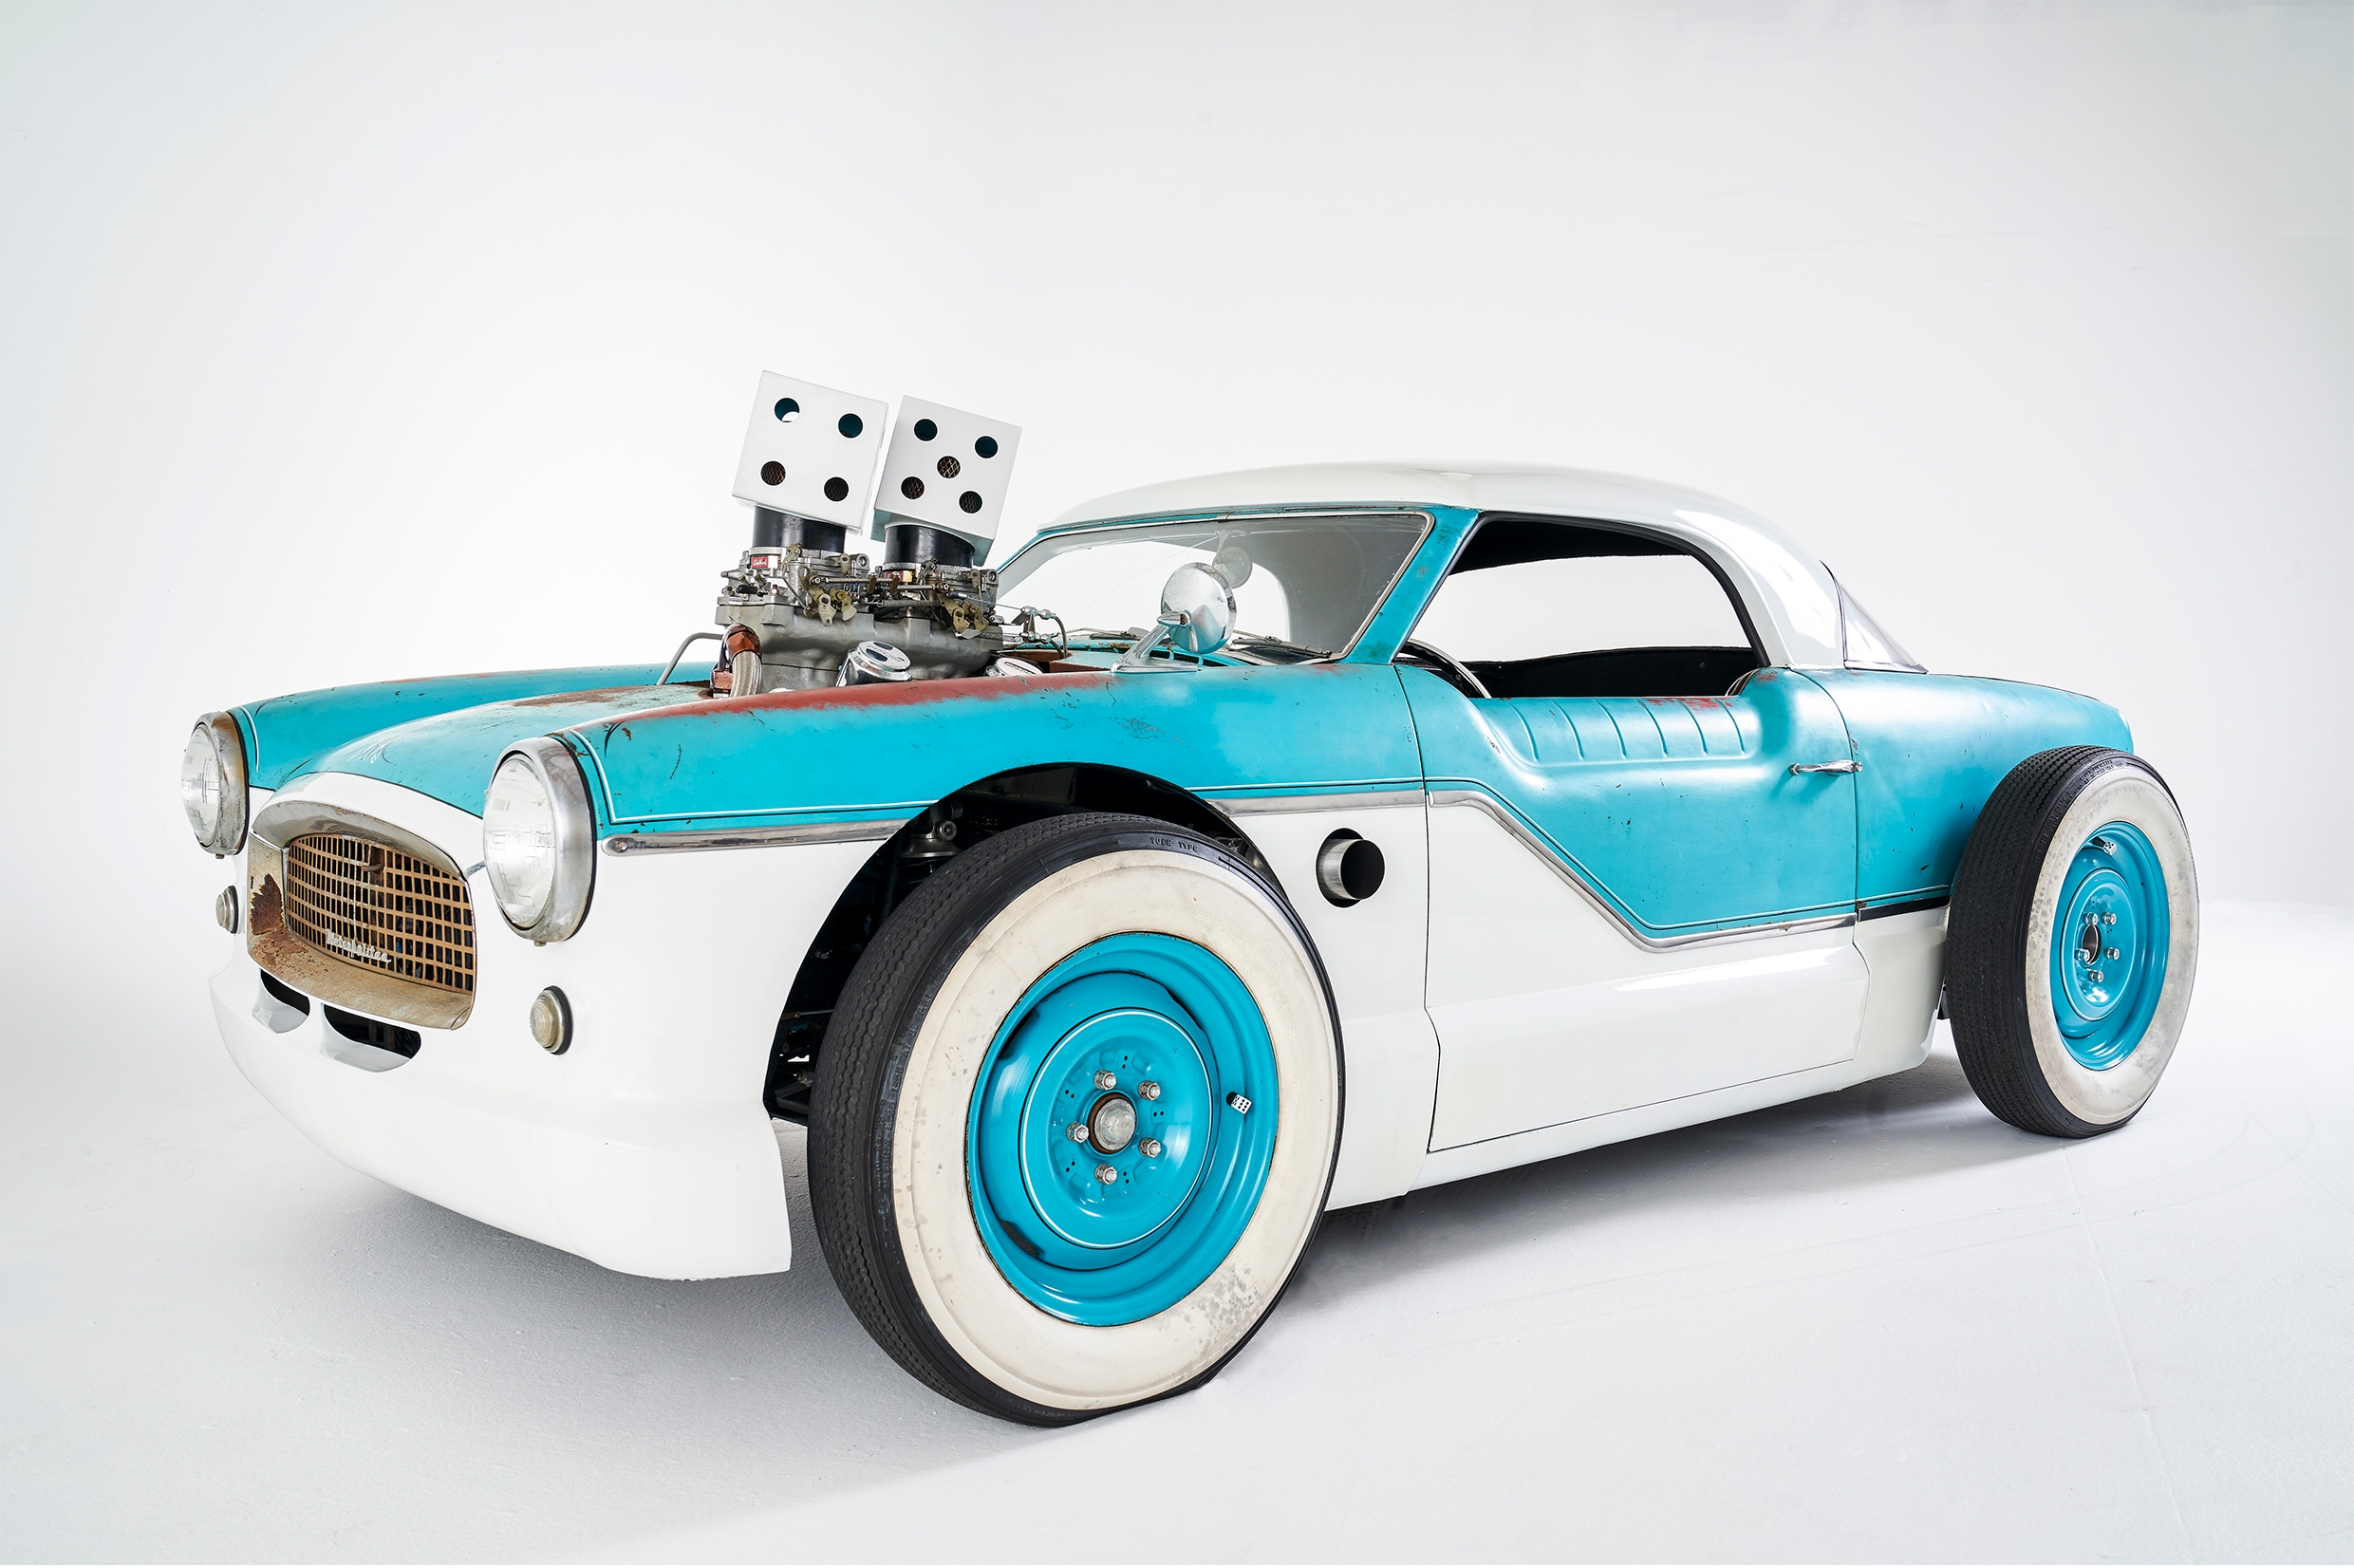 Your car could be the next Hot Wheels toy